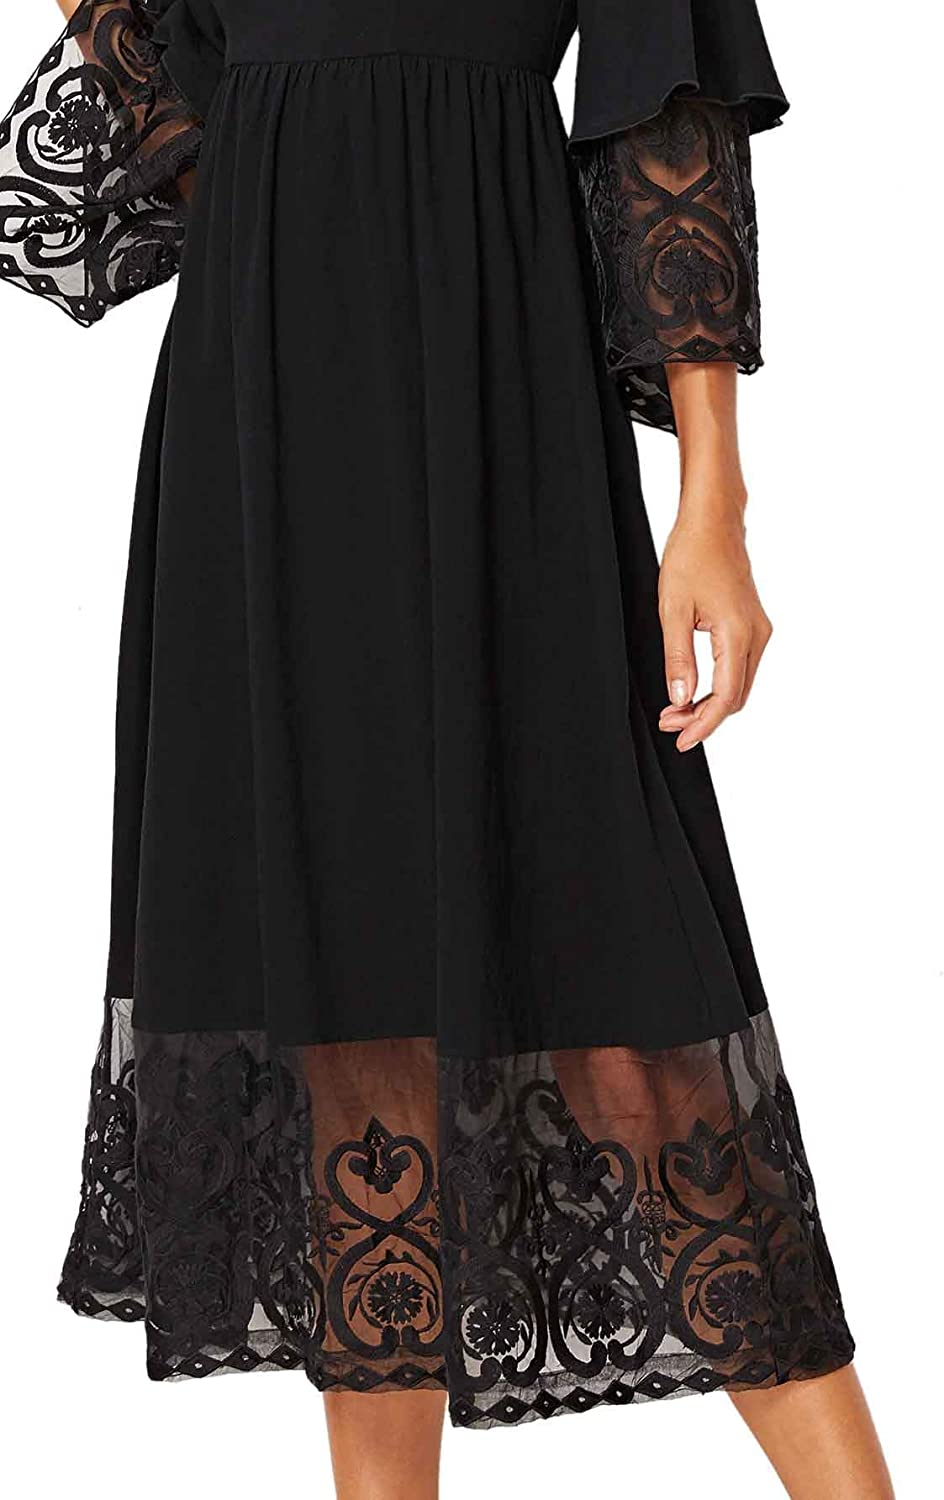 MAKEMECHIC Womens Solid Mock Neck Embroidery Lace Cuff and Hem Flared Long Dress